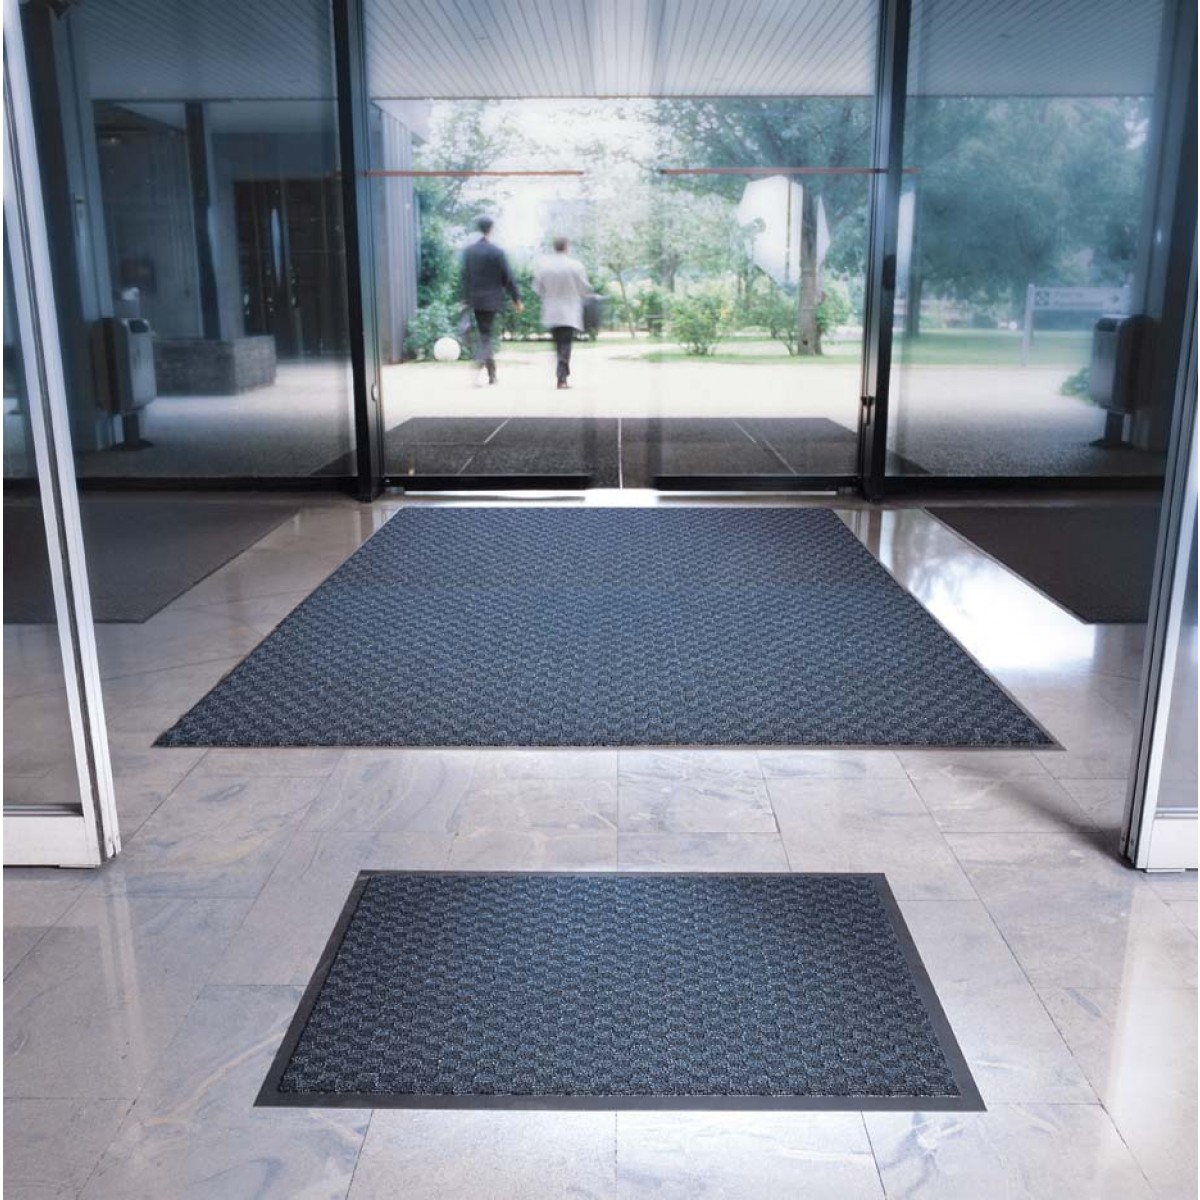 Alfombras 3m 3m Nomad Medium Duty Carpet Mats 6500 Entrance Mats